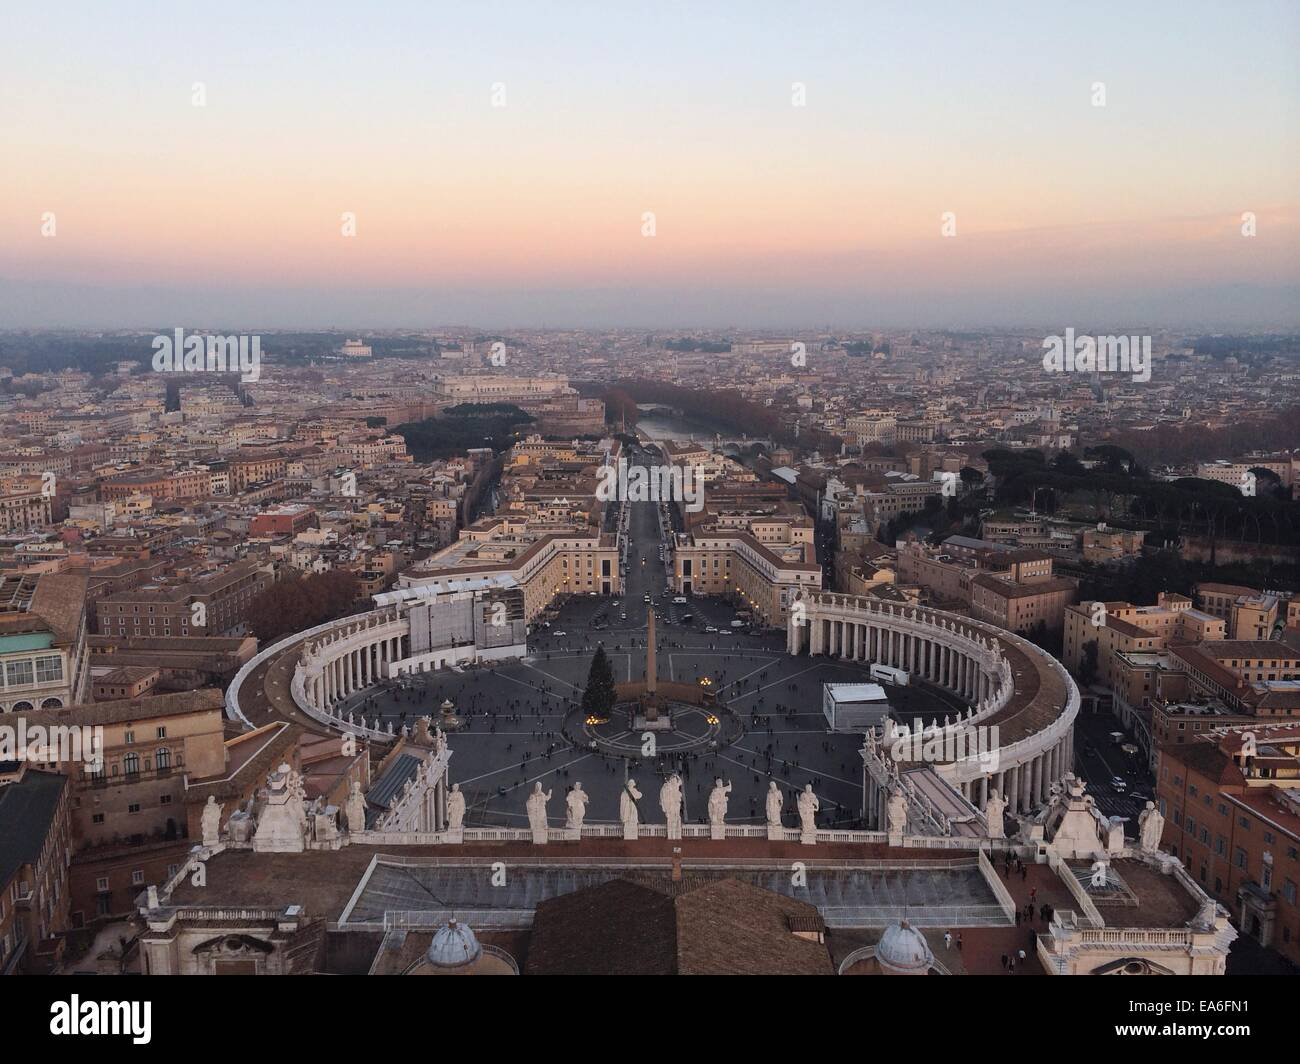 Italy, Rome, Vatican City, View of St. Peter's Square - Stock Image